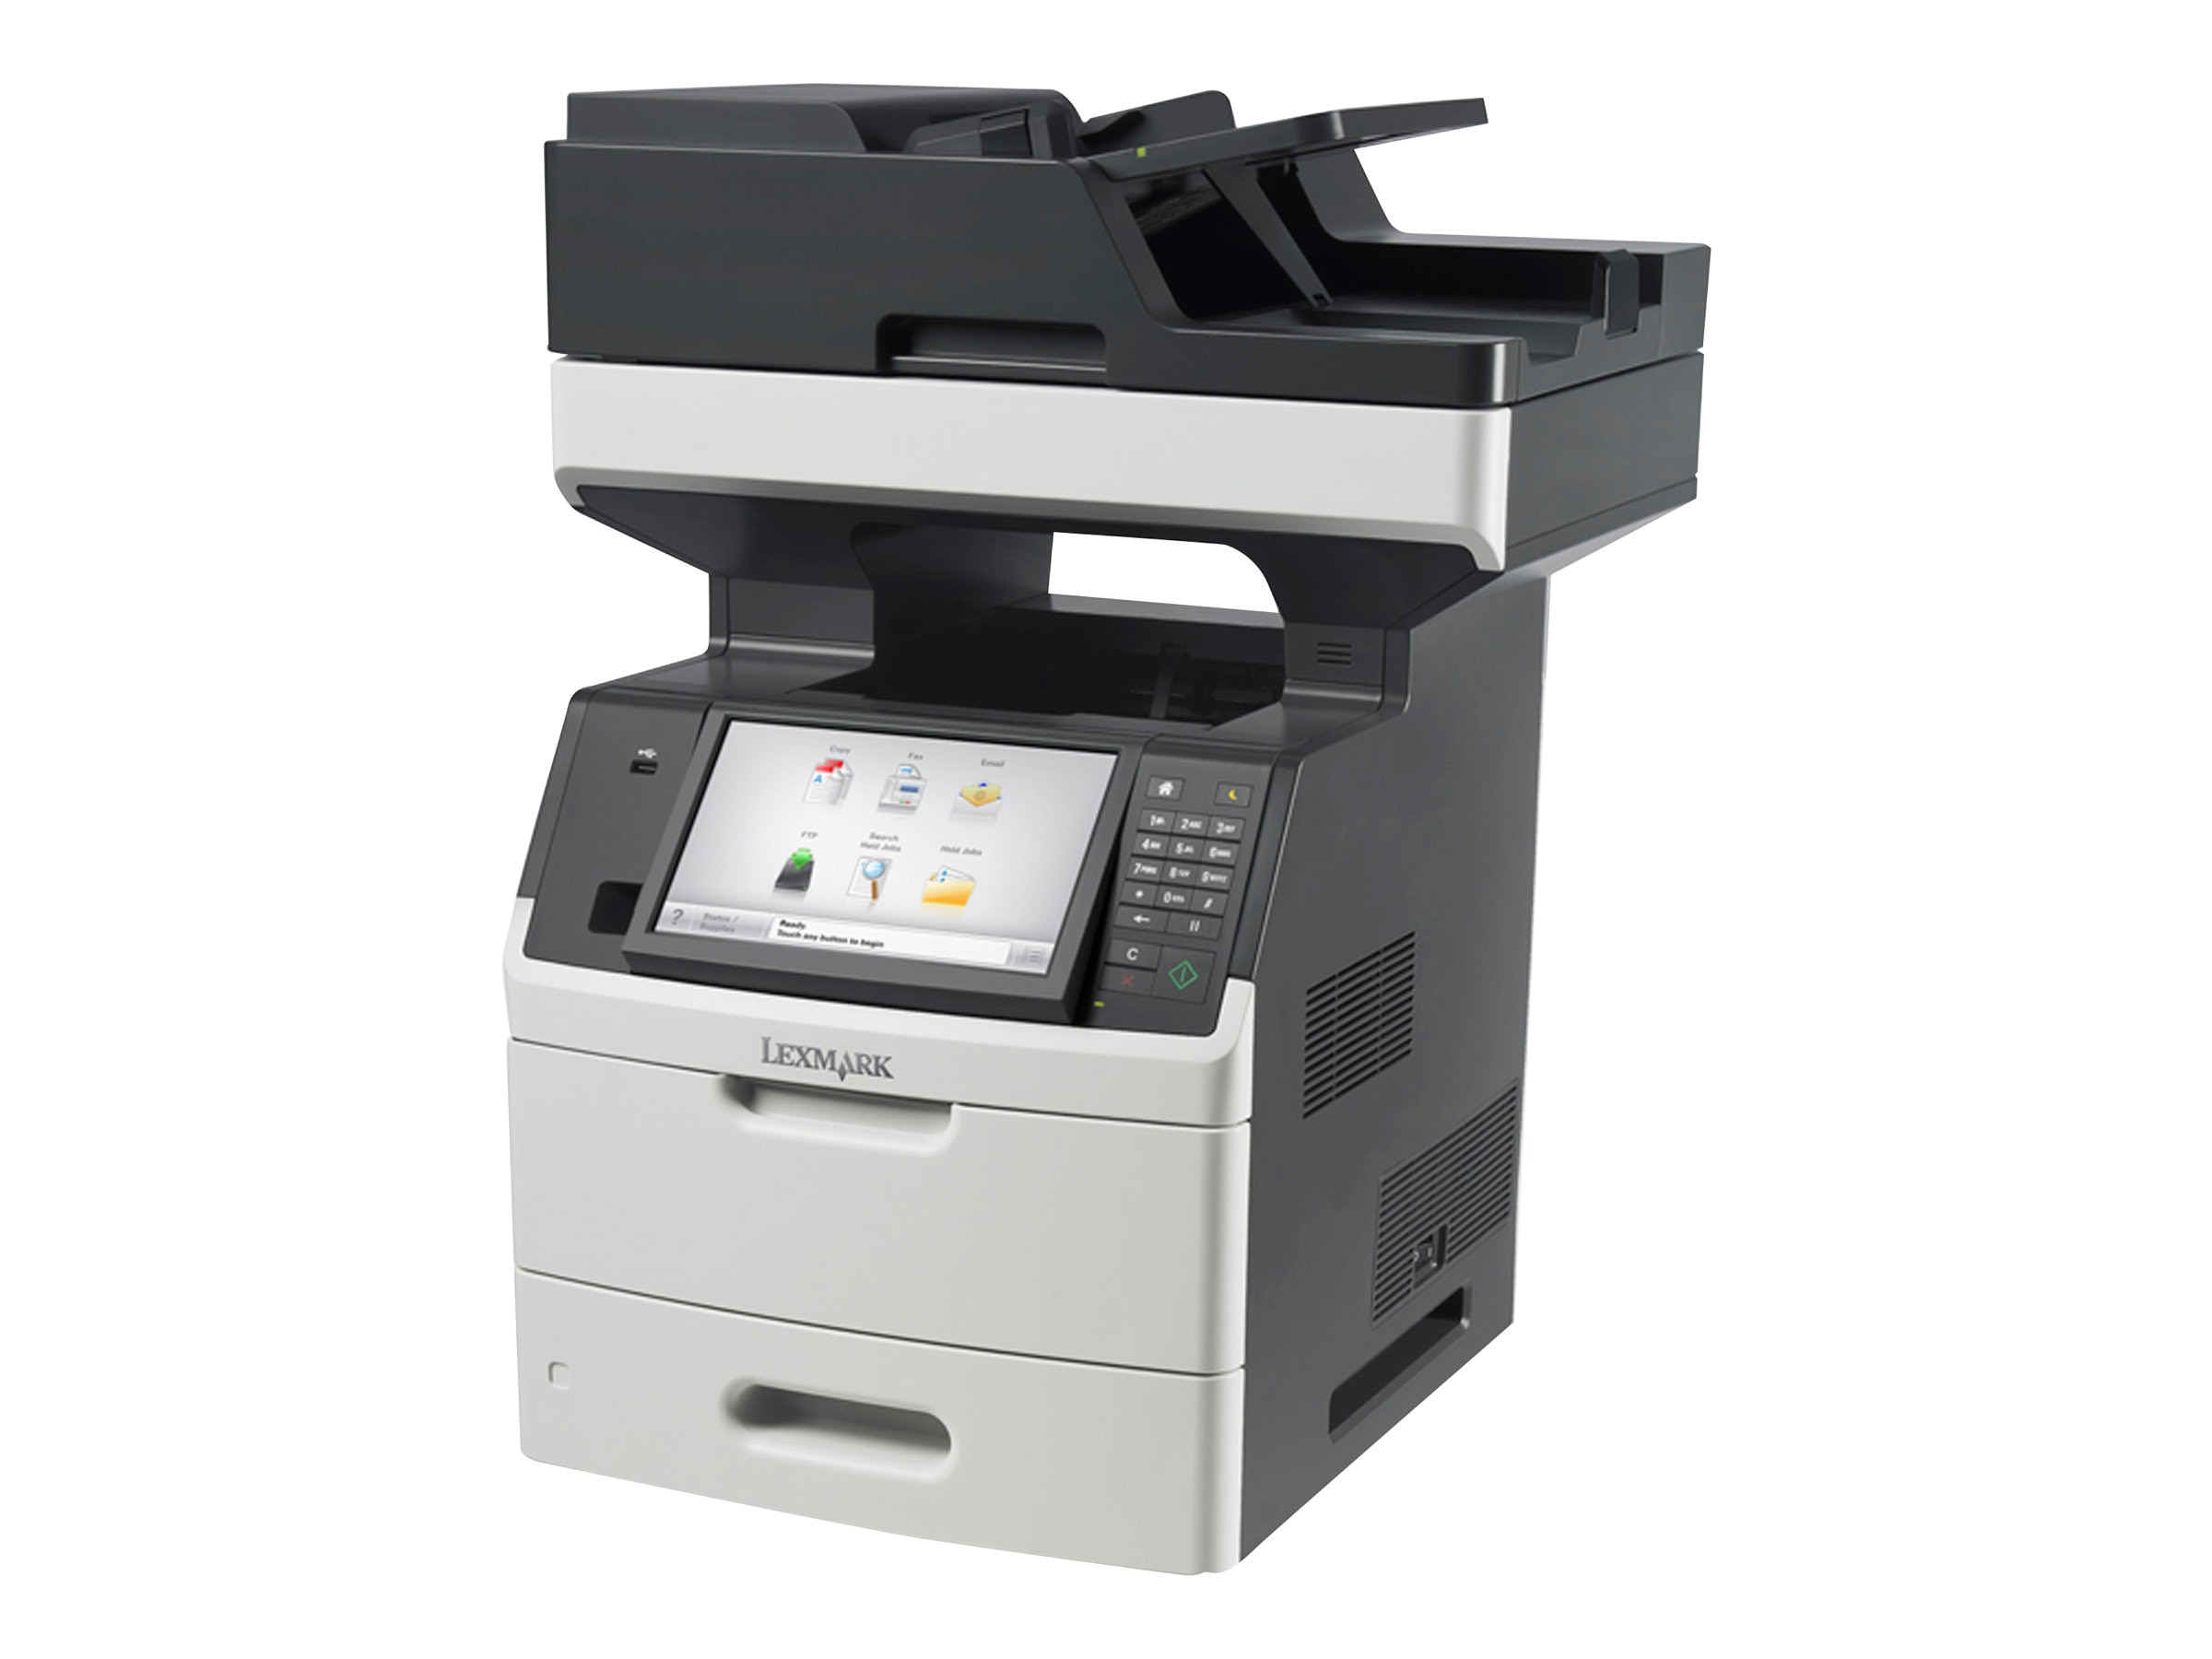 Lexmark MX711de Monochrome Laser Multifunction Printer, 24T7404